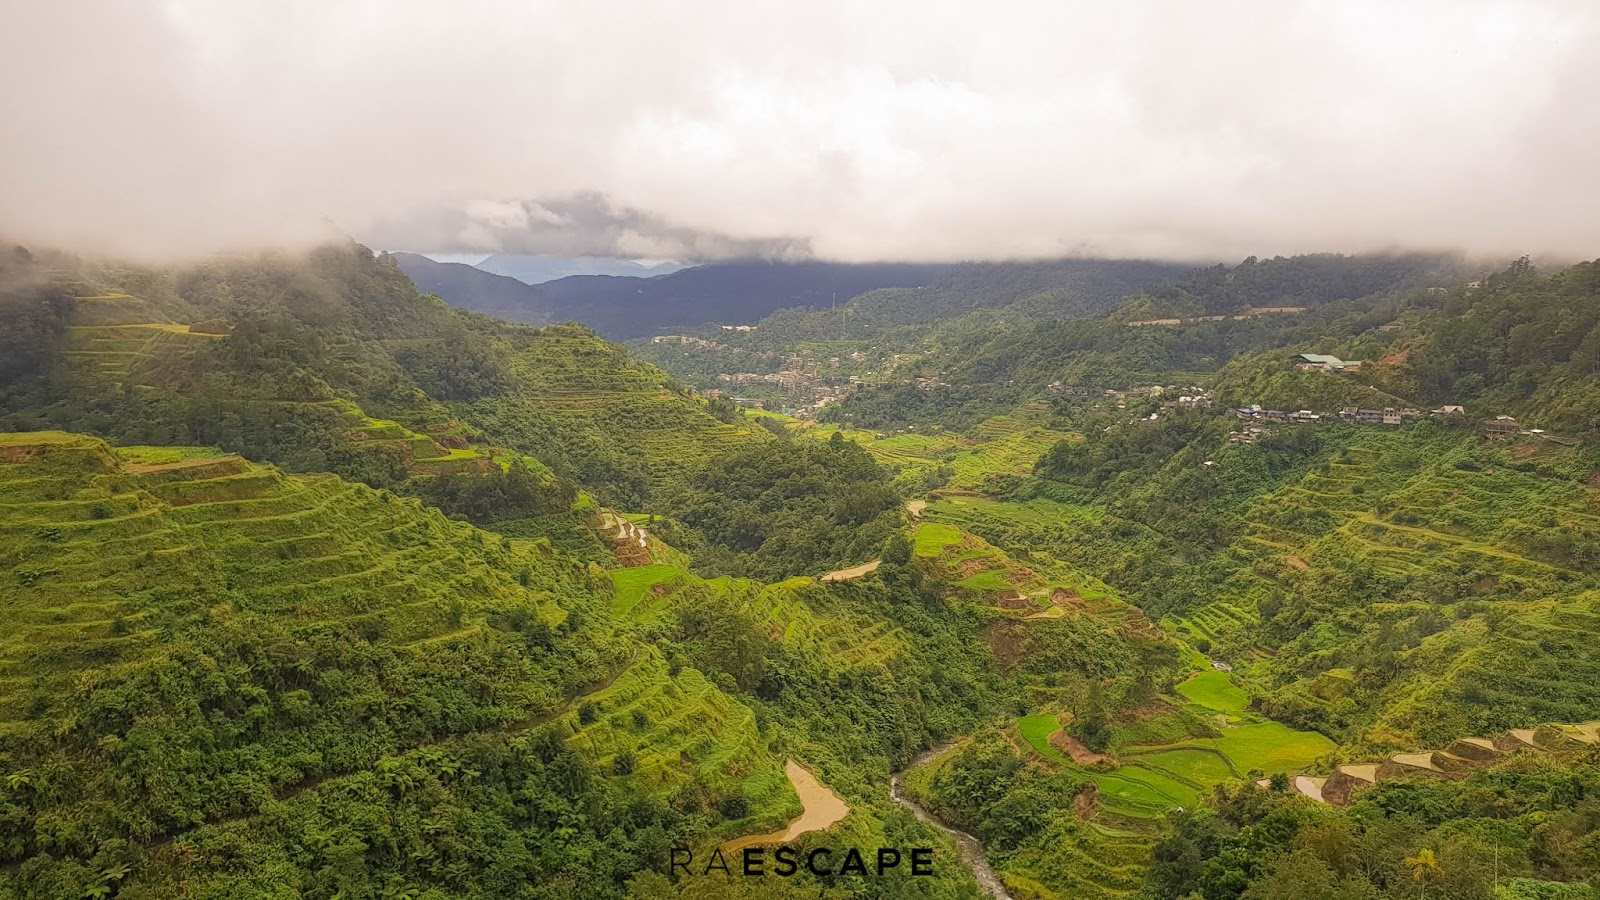 HOW TO GET THERE: MANILA TO BANAUE Bus with Bookaway